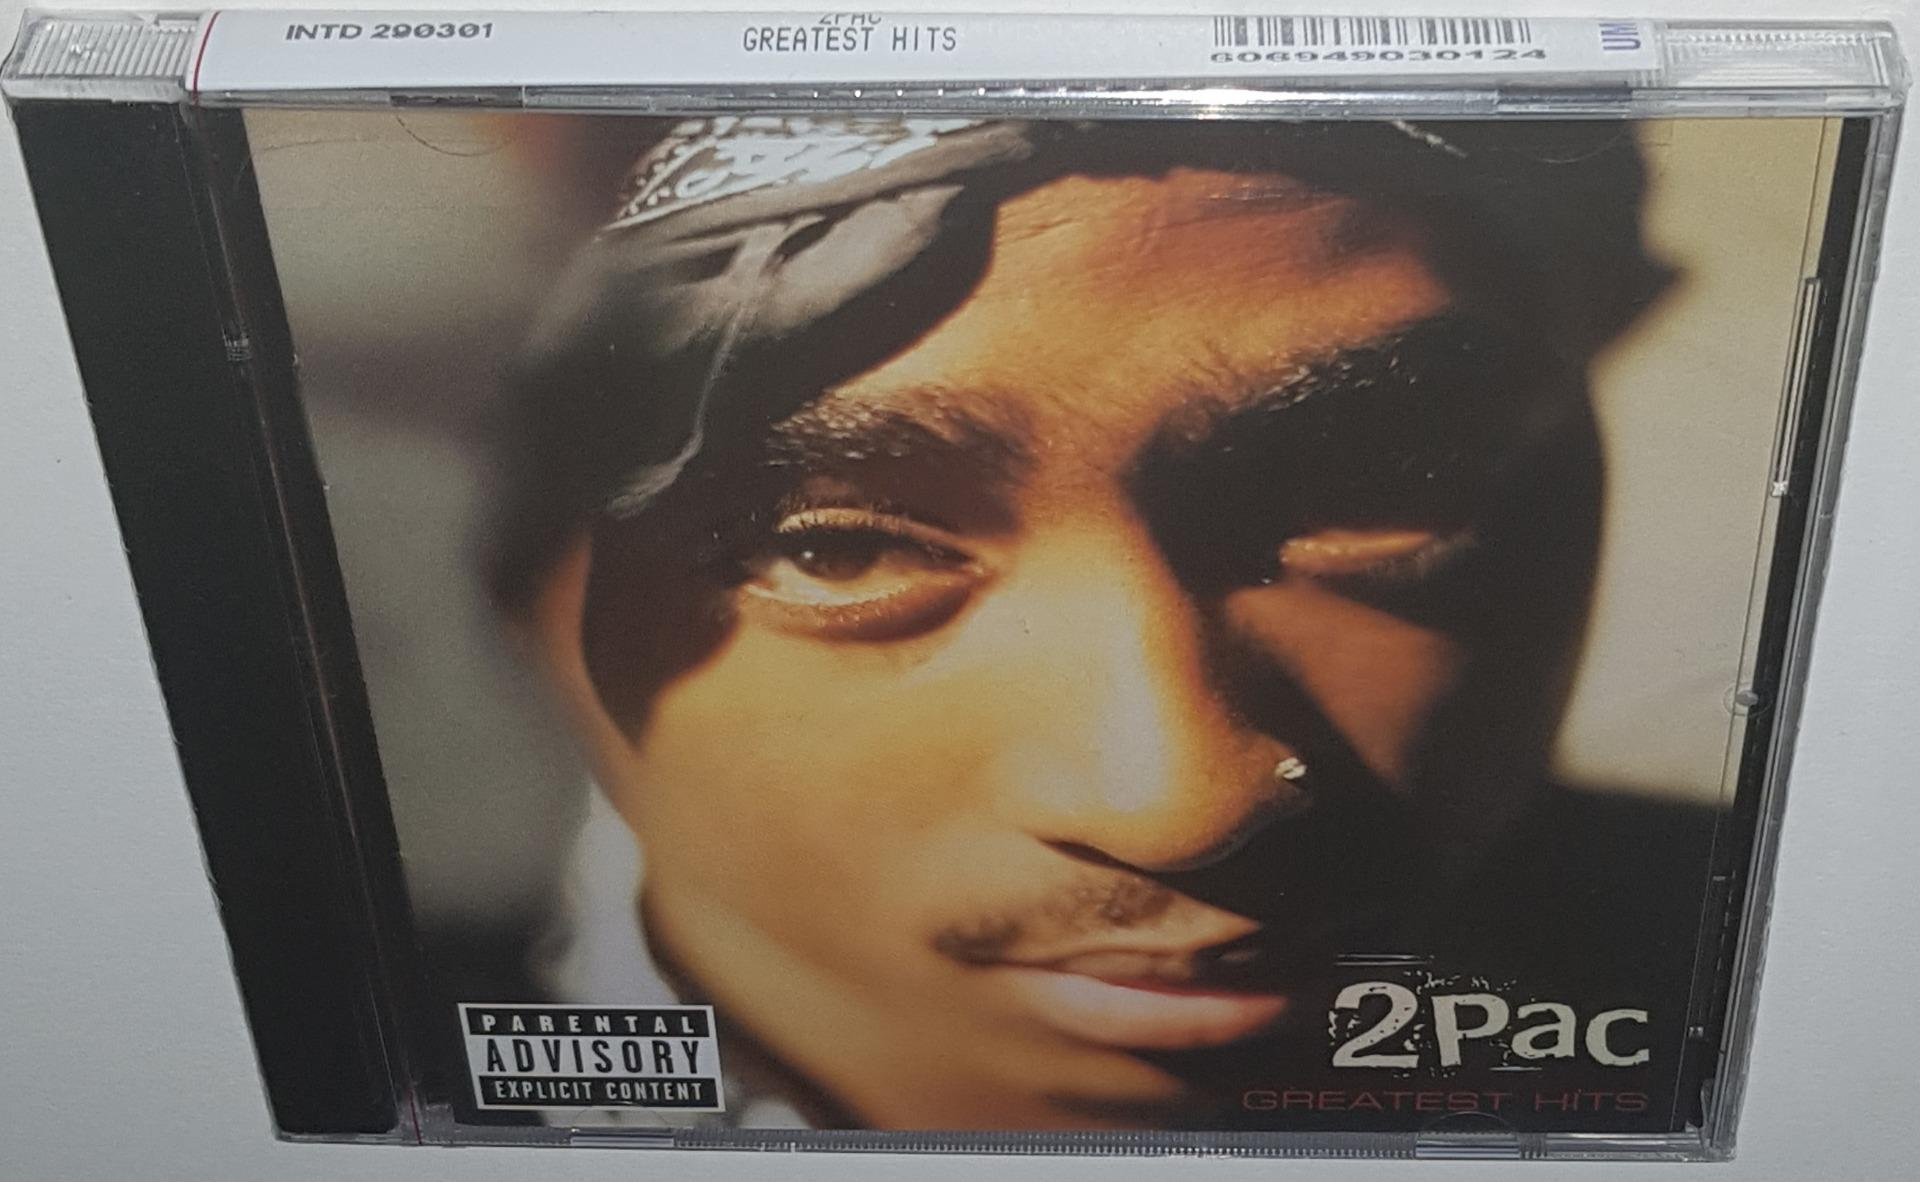 Details about 2PAC GREATEST HITS (1998 EXPLICIT) BRAND NEW SEALED 2CD SET  HIT EM UP TOSS IT UP